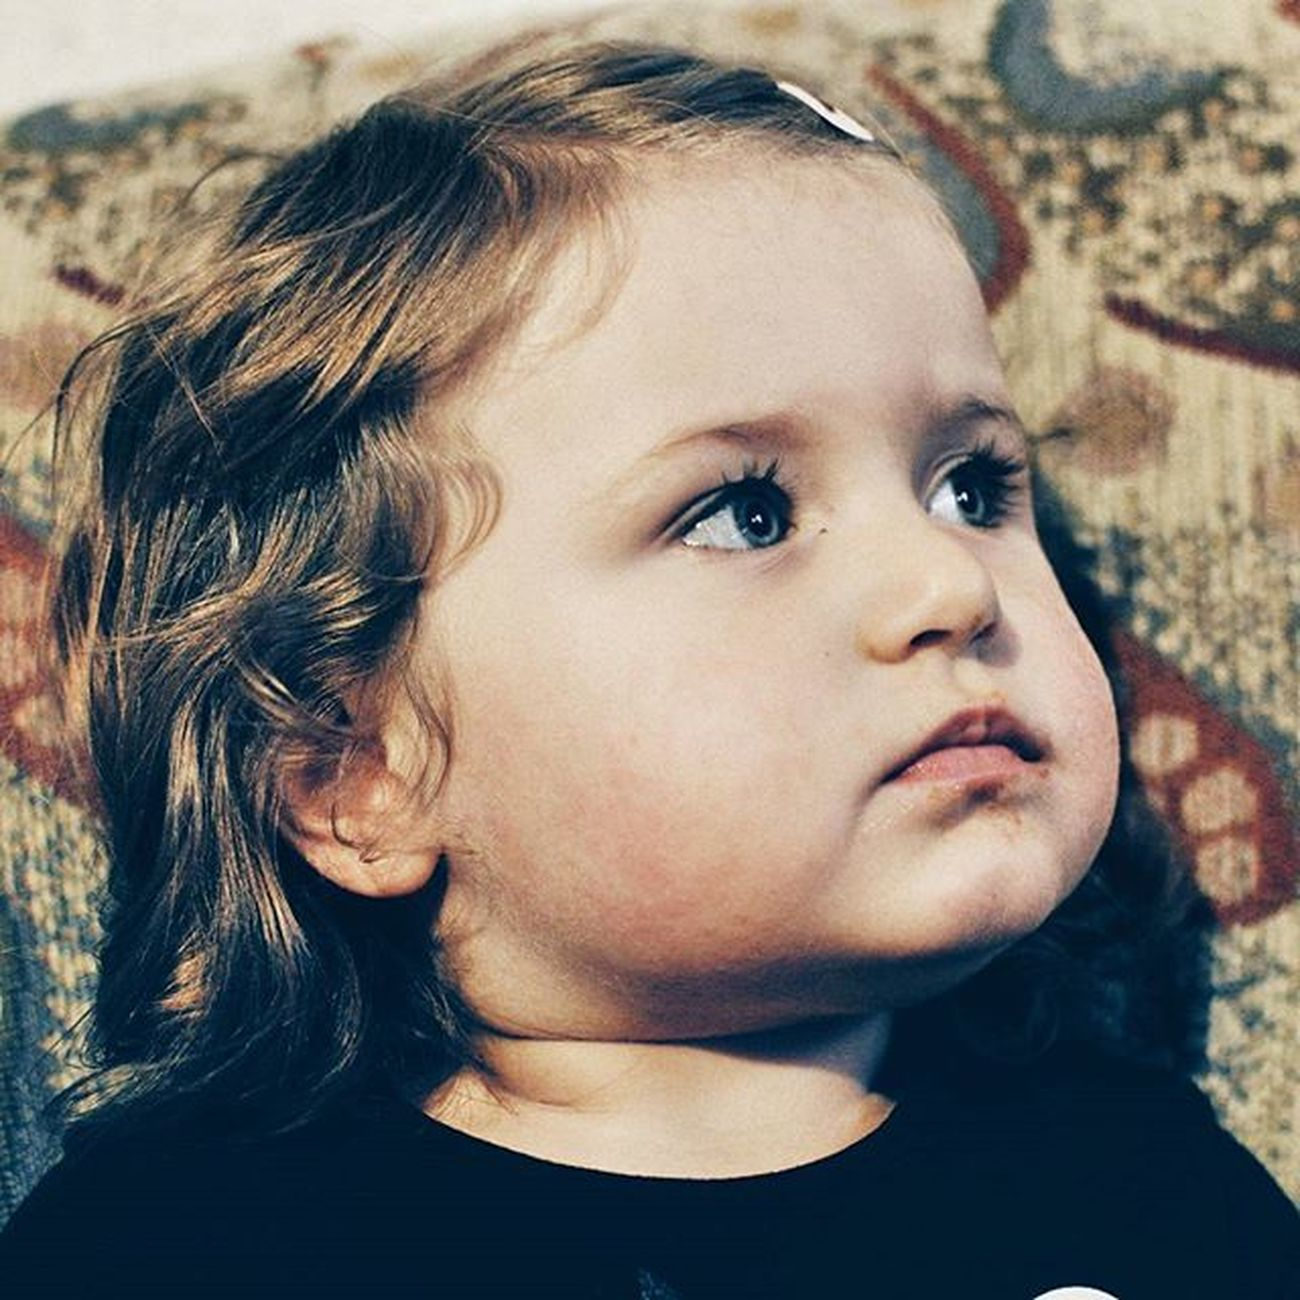 Z usypianiem coraz lepiej🙌 Dobranoc💙 Goodnight Night Kisses Lullaby Instapic Picofthenight Thebest Love Beautiful Photo Mydoughter Loveher Igbaby Igkid Instadziecko Coreczka Sliczna Jestembojestes Kochamcię Mojewszystko Evkikidsmodel Babylove Cutebaby Todlerkids